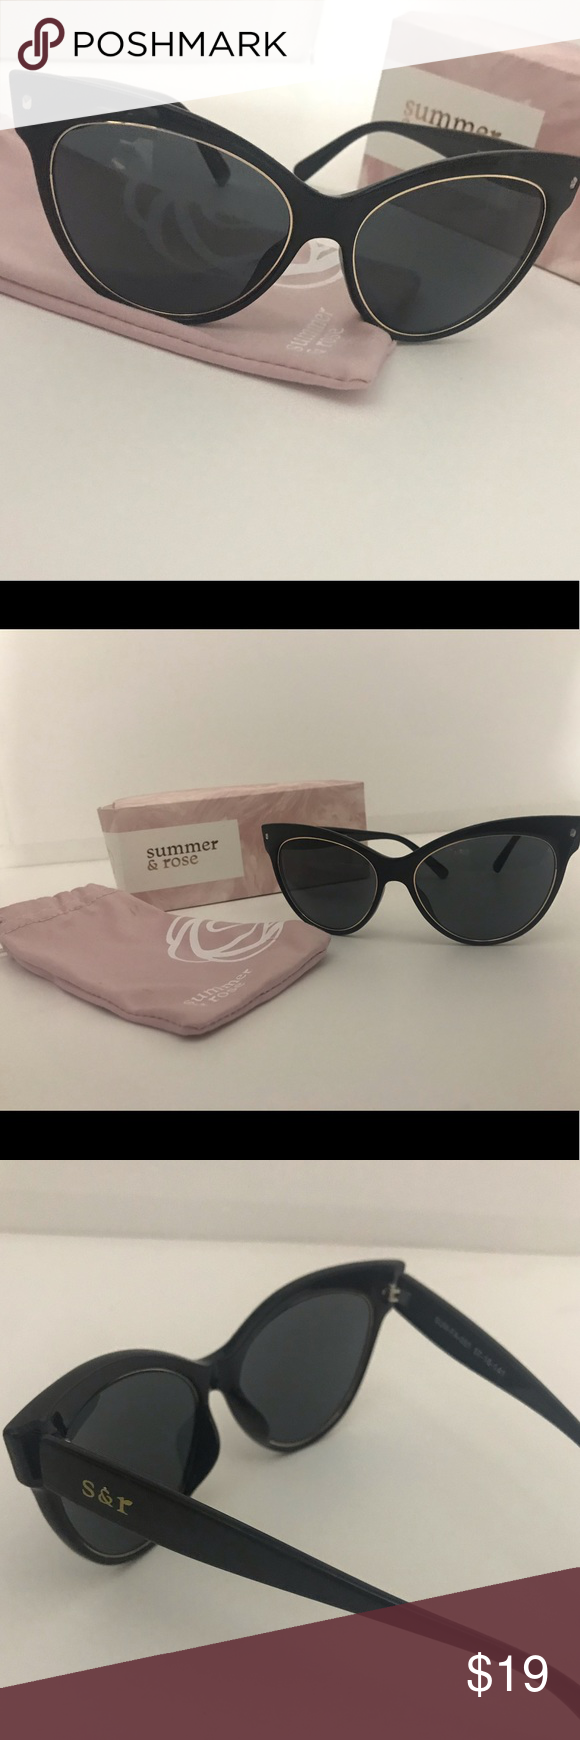 97bad438b5cfc Summer and Rose Cat Eye Sunglasses Shiny black cat eye sunglasses. Get the  mysterious look with these stylish sunníes. Gold details around the lenses  give ...